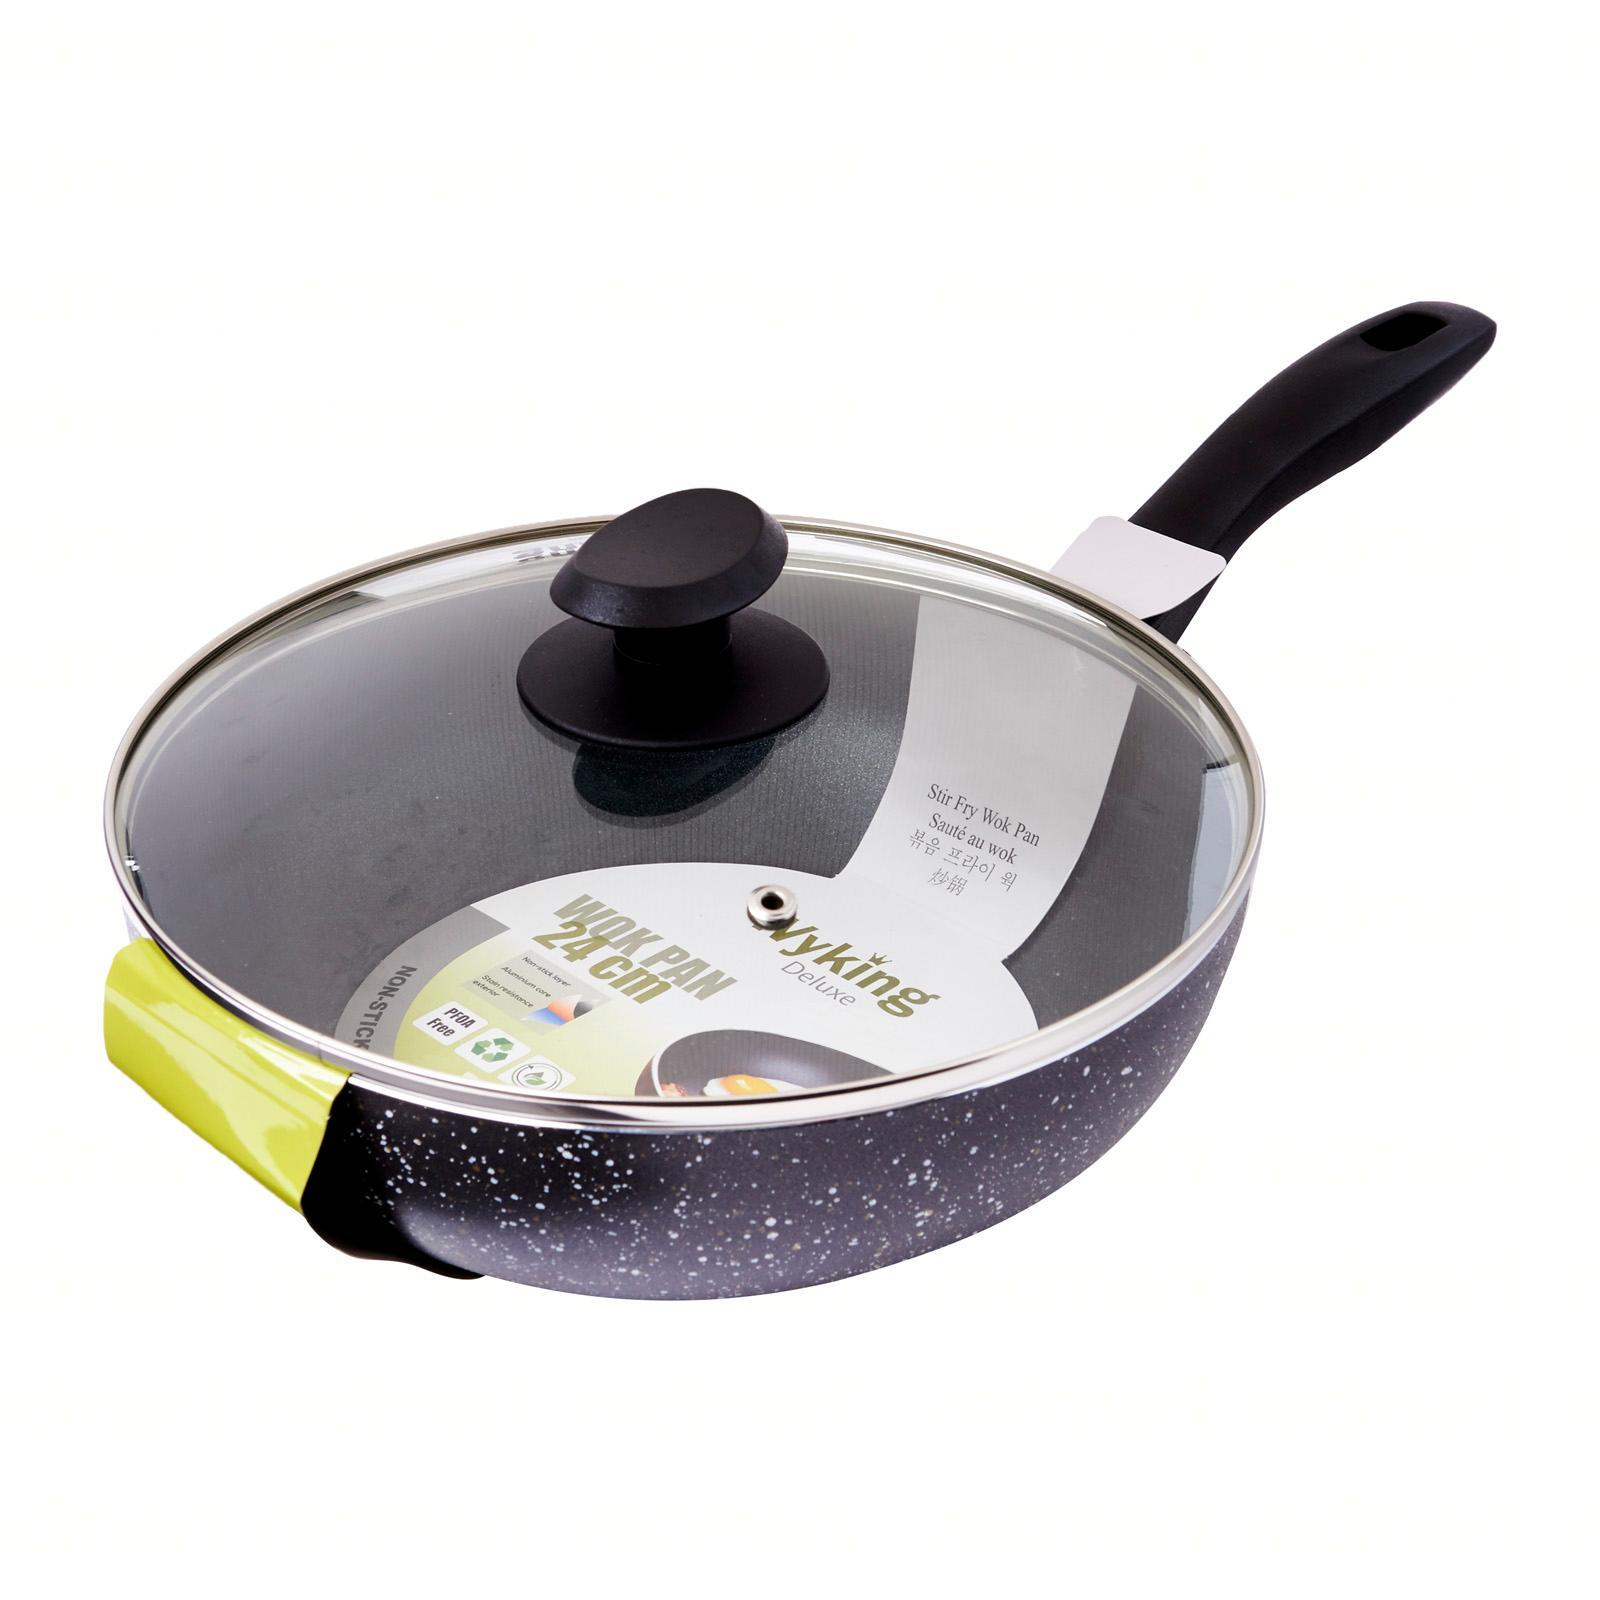 Wyking Non Stick Induction Wok Pan with Glass Lid (24 CM)